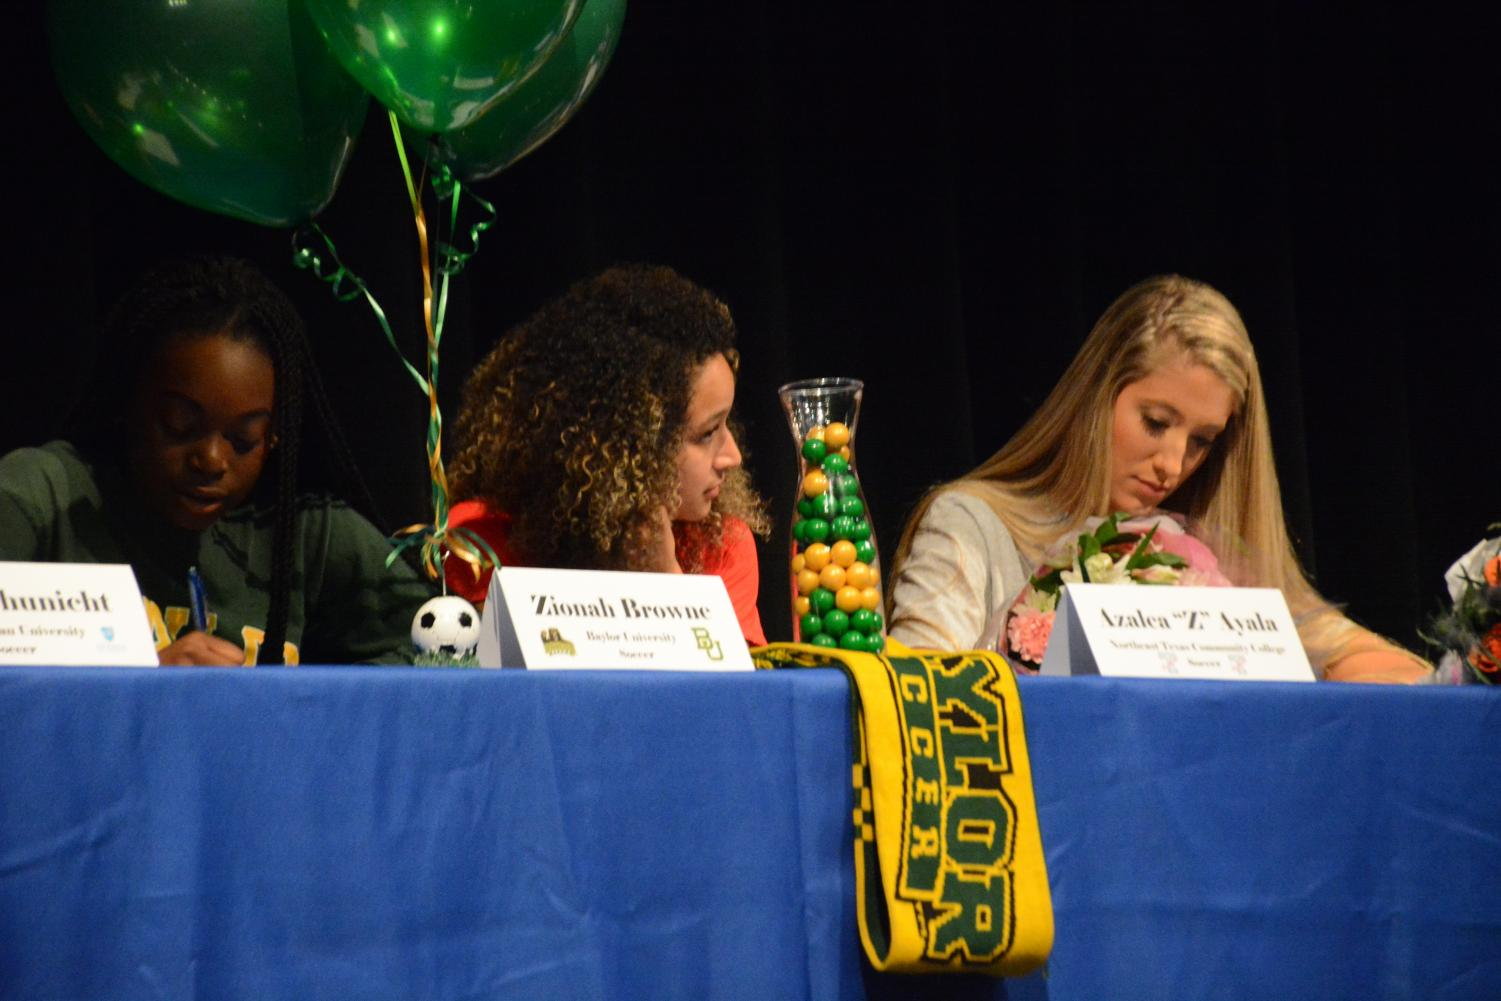 On College Signing Day in February, several seniors show their commitment to collegiate sports.